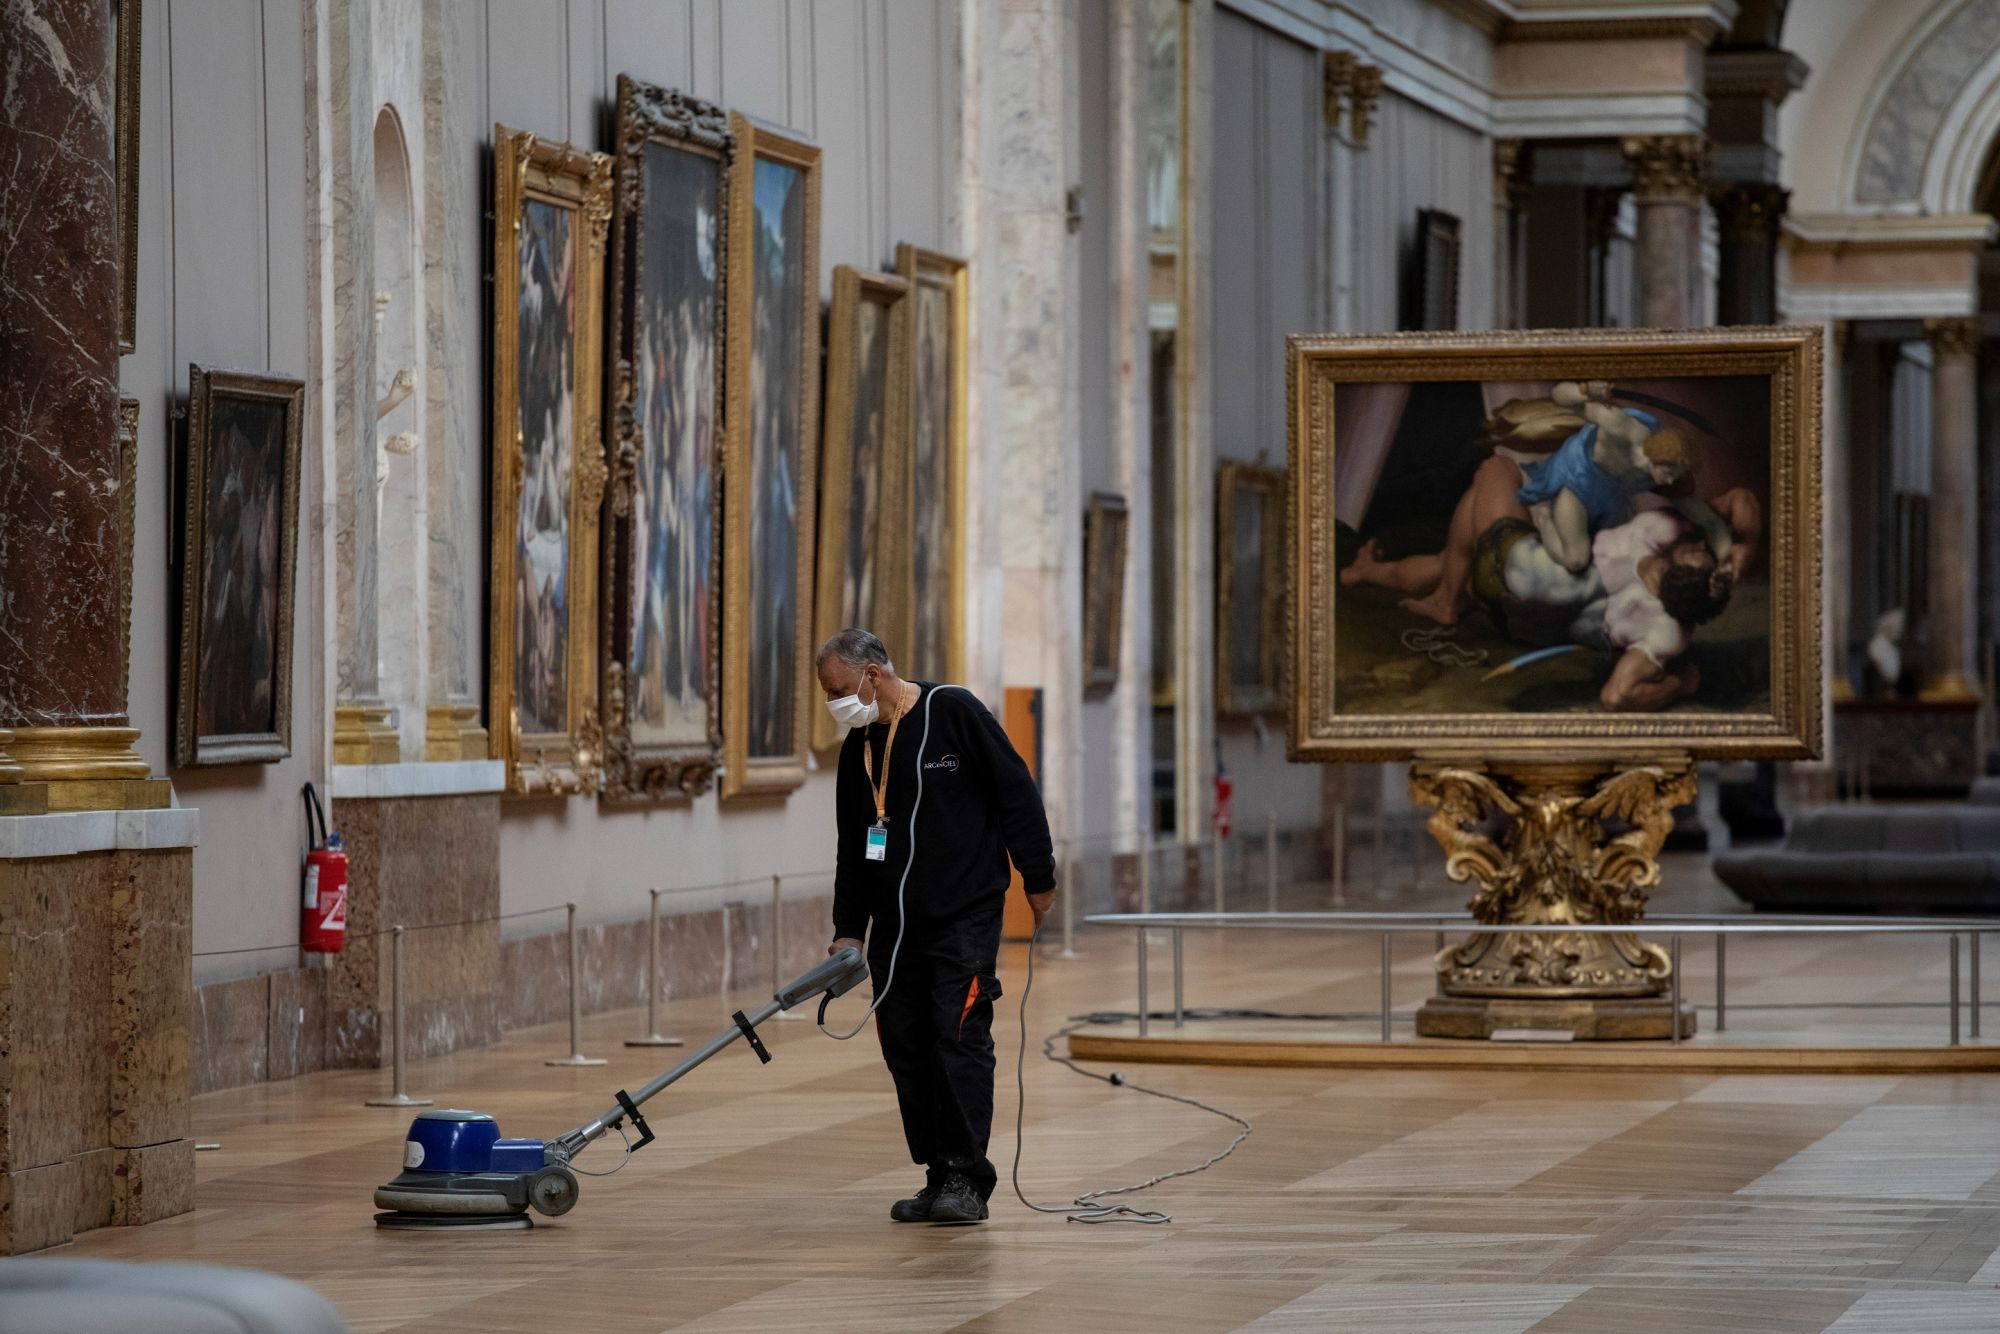 """A picture taken on June 23, 2020 shows an employee cleaning the floor of a room of the Musee du Louvre in Paris. - The Louvre museum will reopen its doors on July 6, 2020, after months of closure due to lockdown measures linked to the COVID-19 pandemic, caused by the novel coronavirus. The coronavirus crisis has already caused """"more than 40 million euros in losses"""" at the Louvre, announced its president and director Jean-Luc Martinez, who advocates a revival through """"cultural democratization"""" and is prepari"""